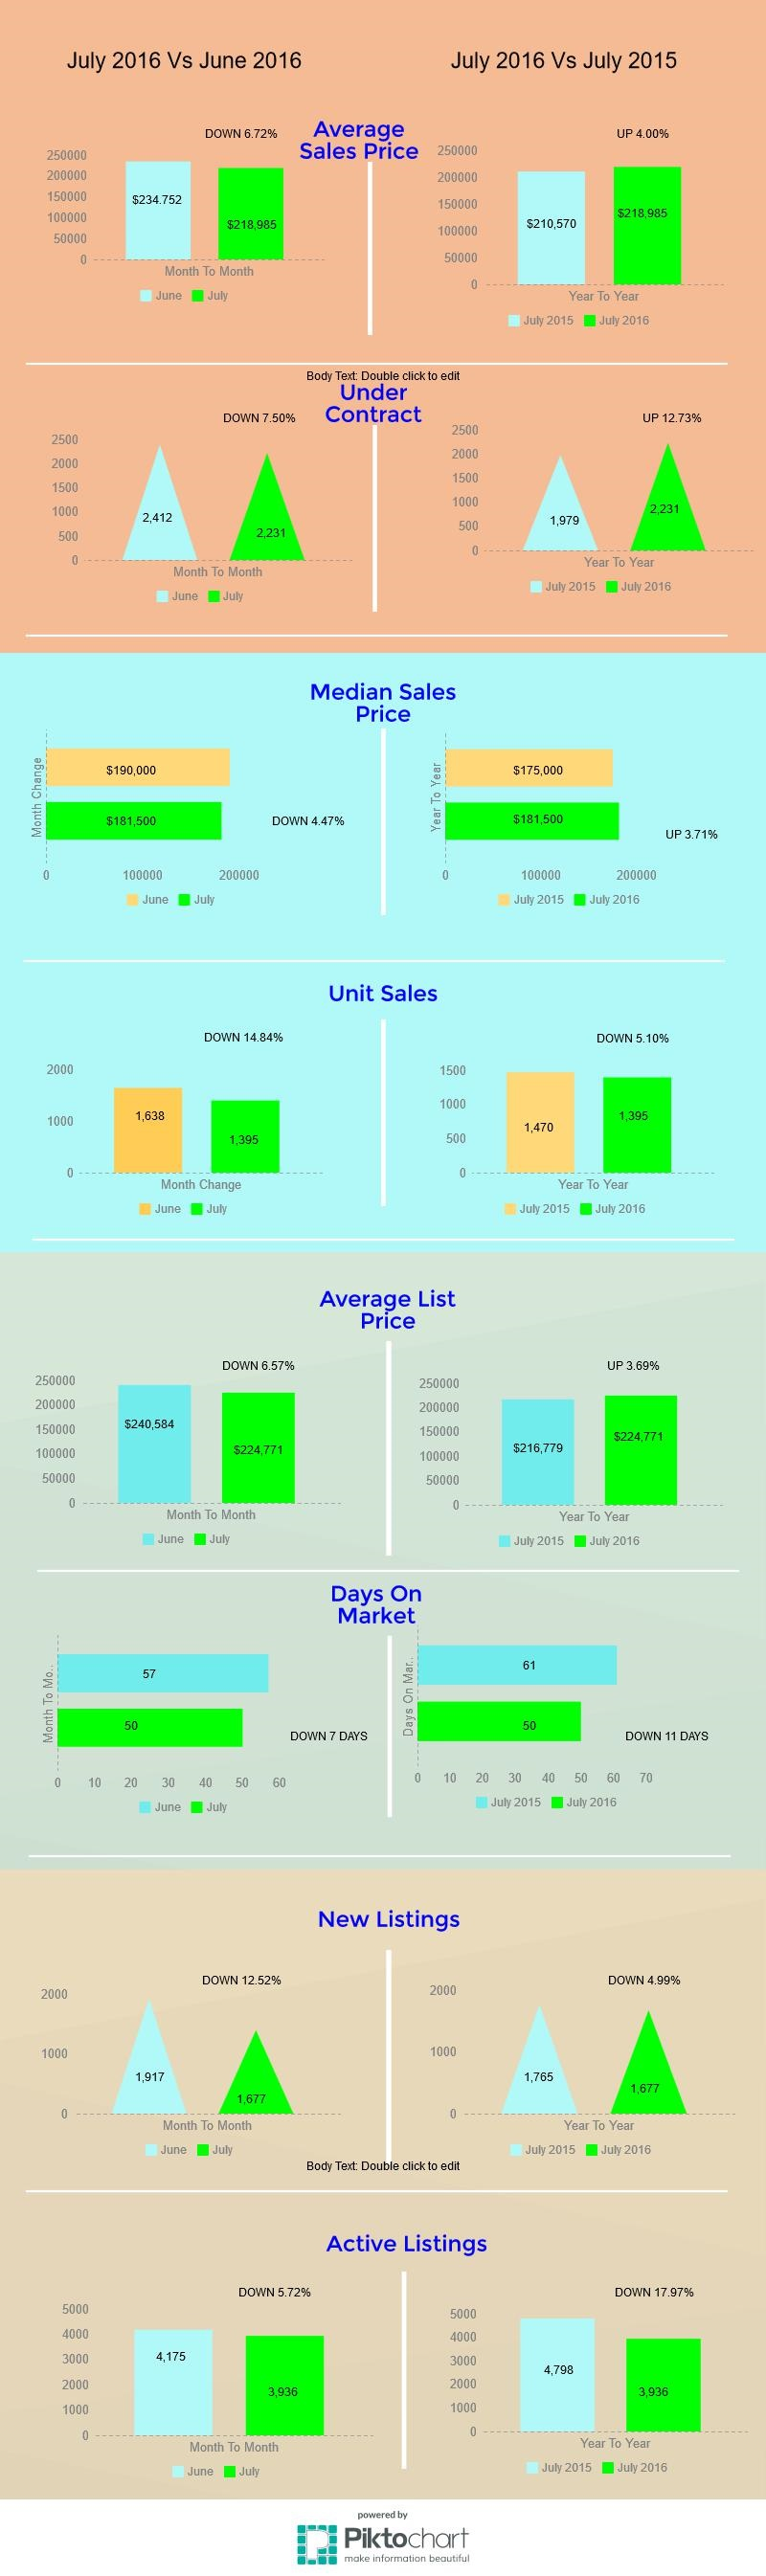 Tucson Housing Market July 2016